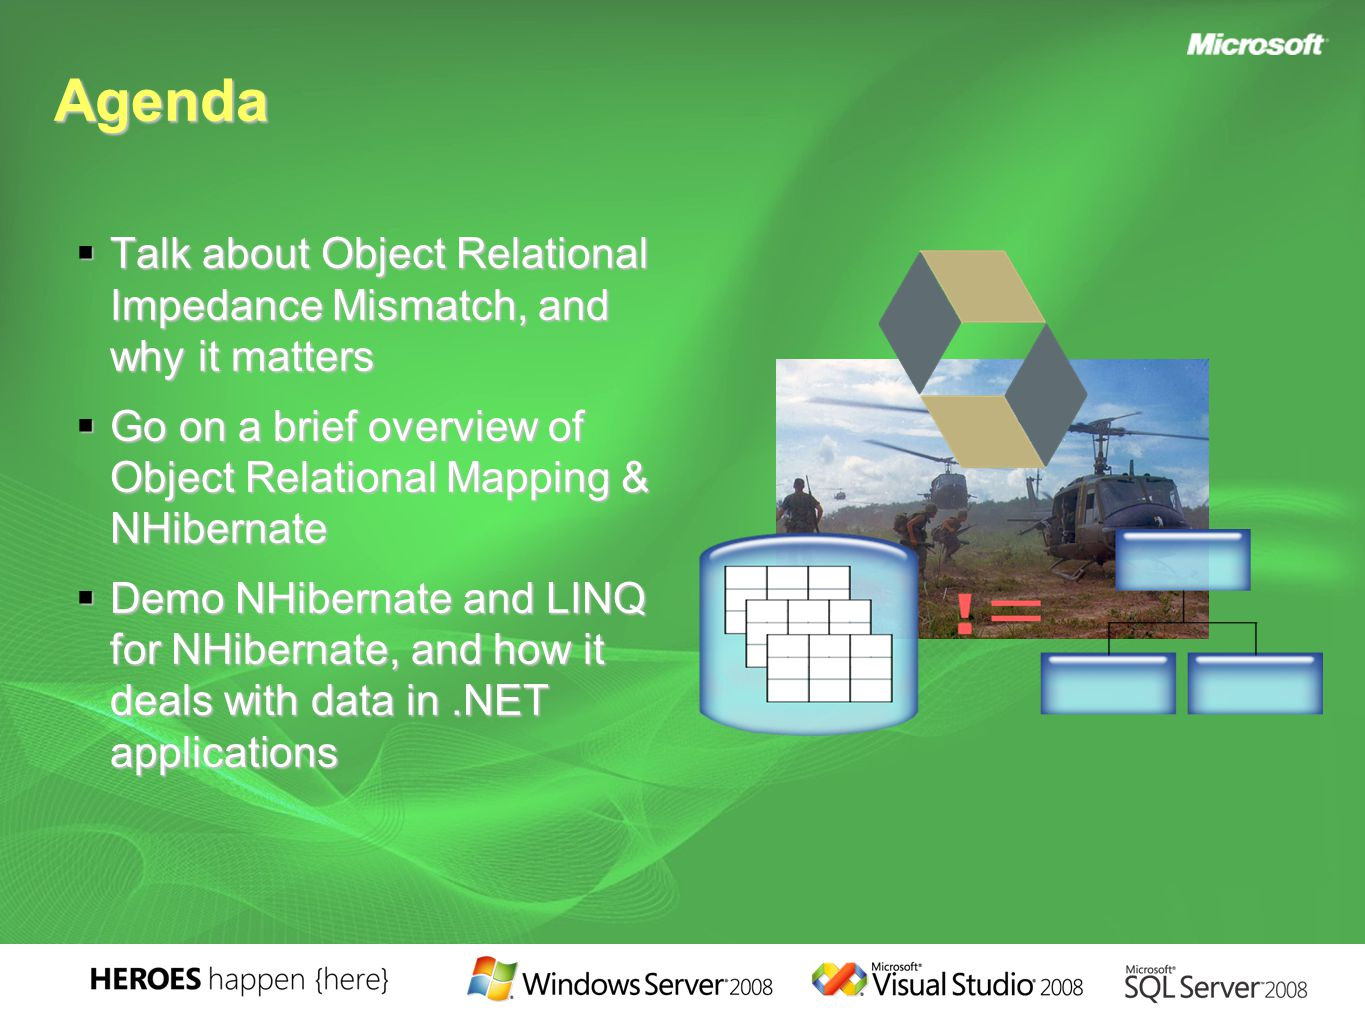 Agenda  Talk about Object Relational Impedance Mismatch, and why it matters  Go on a brief overview of Object Relational Mapping & NHibernate  Demo